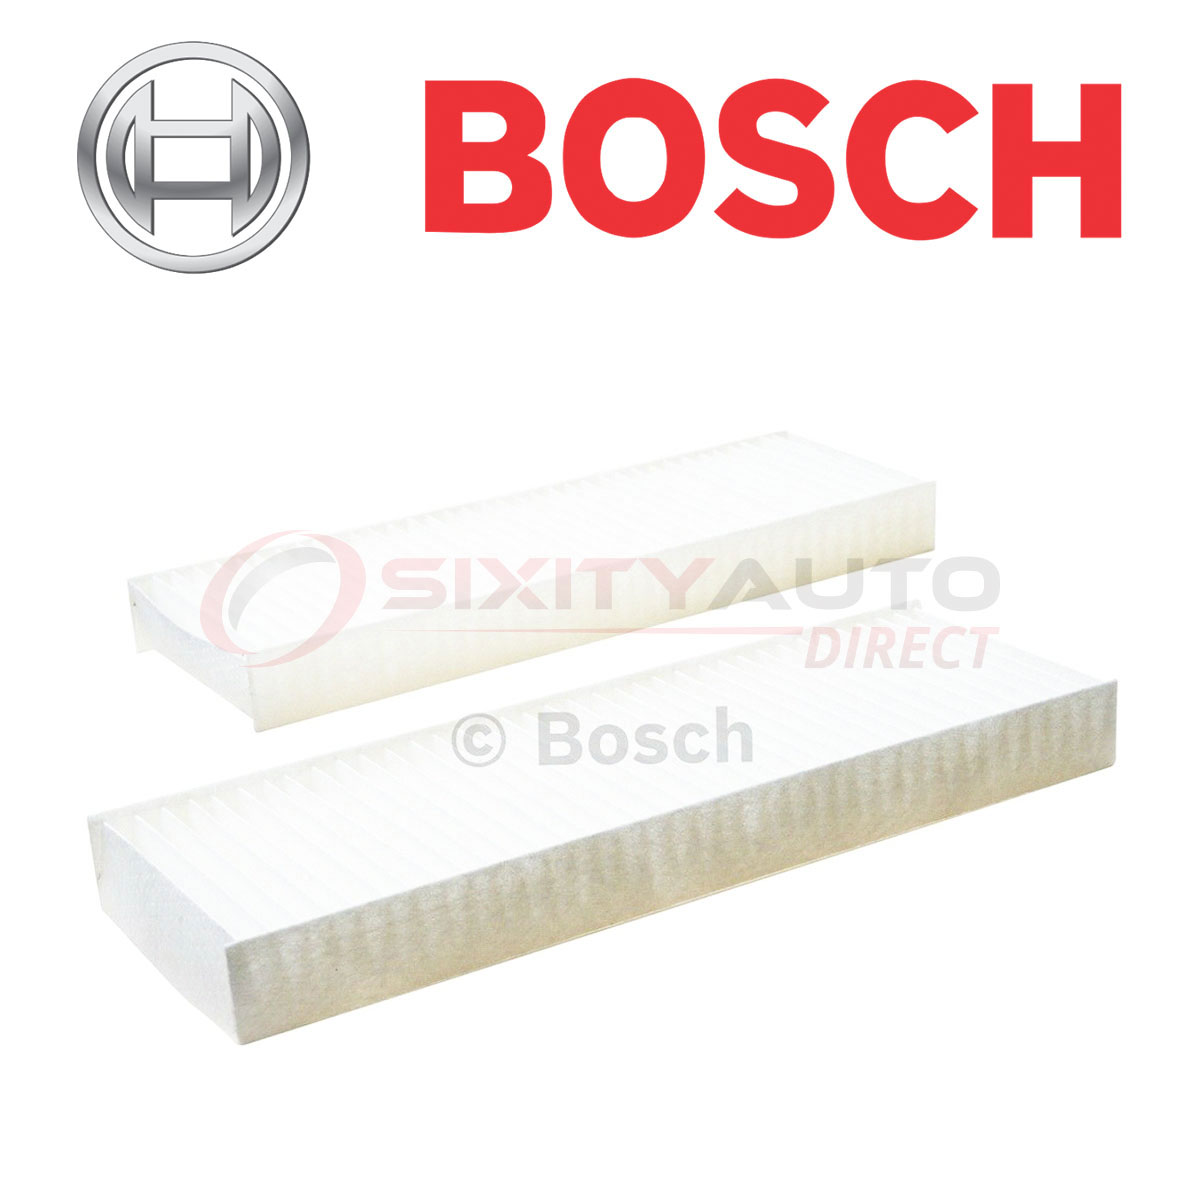 Bosch Cabin Air Filter For 1999-2003 Acura TL 3.2L V6